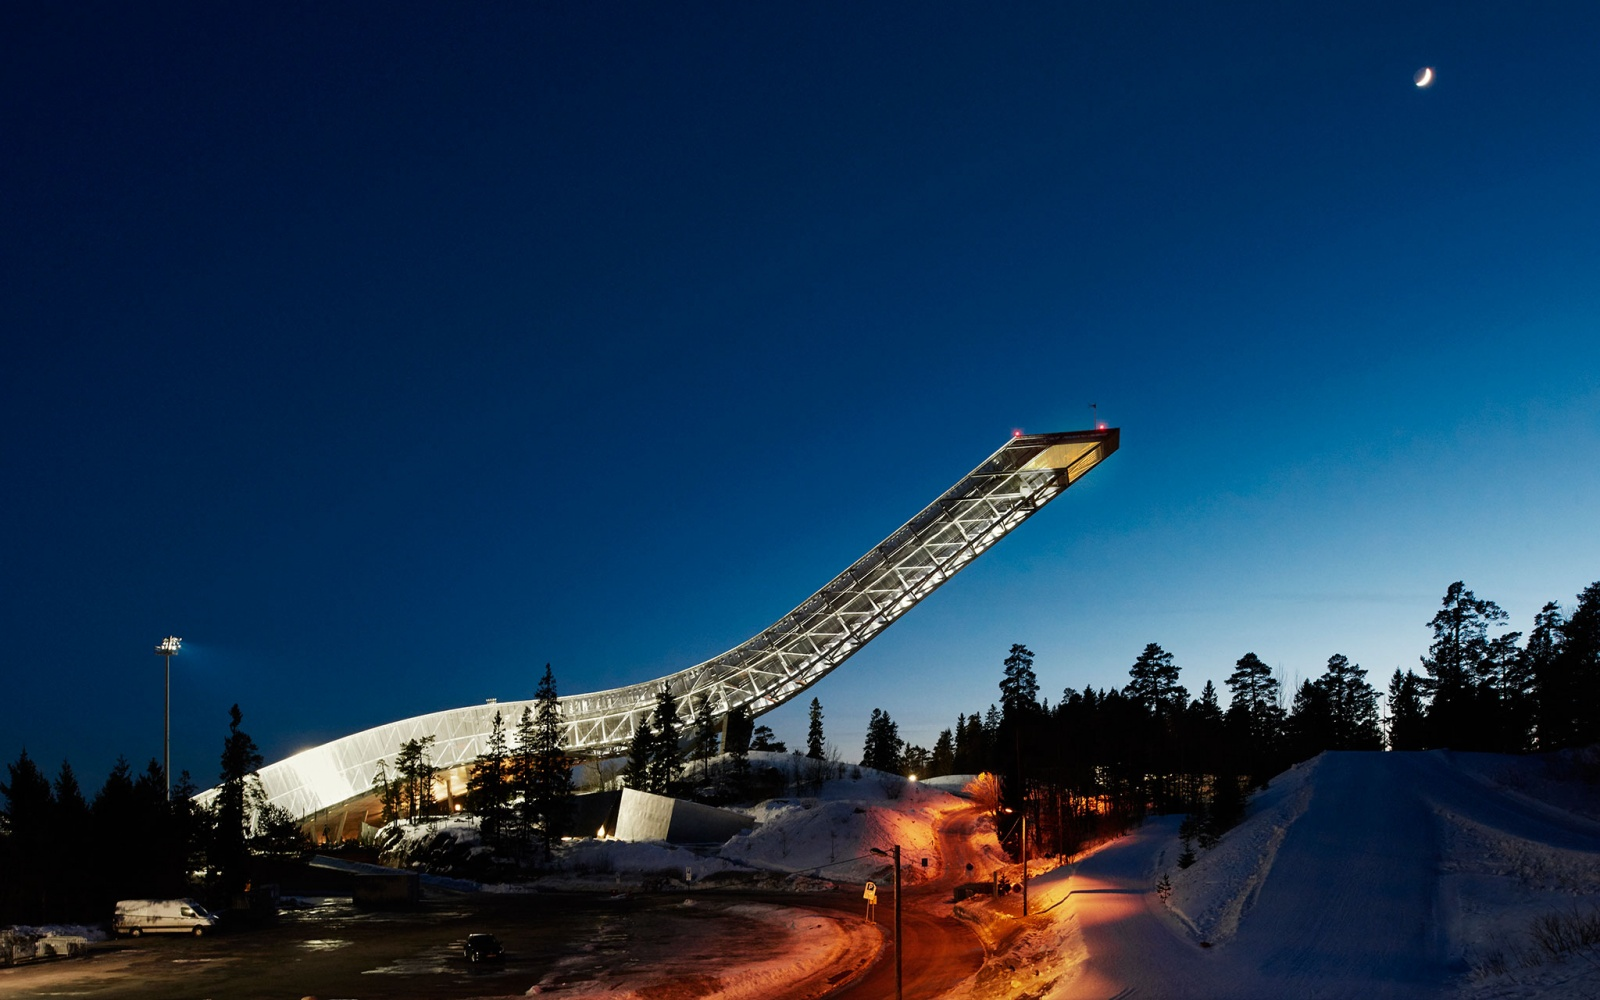 Airbnb Night at Holmenkollen, Exterior